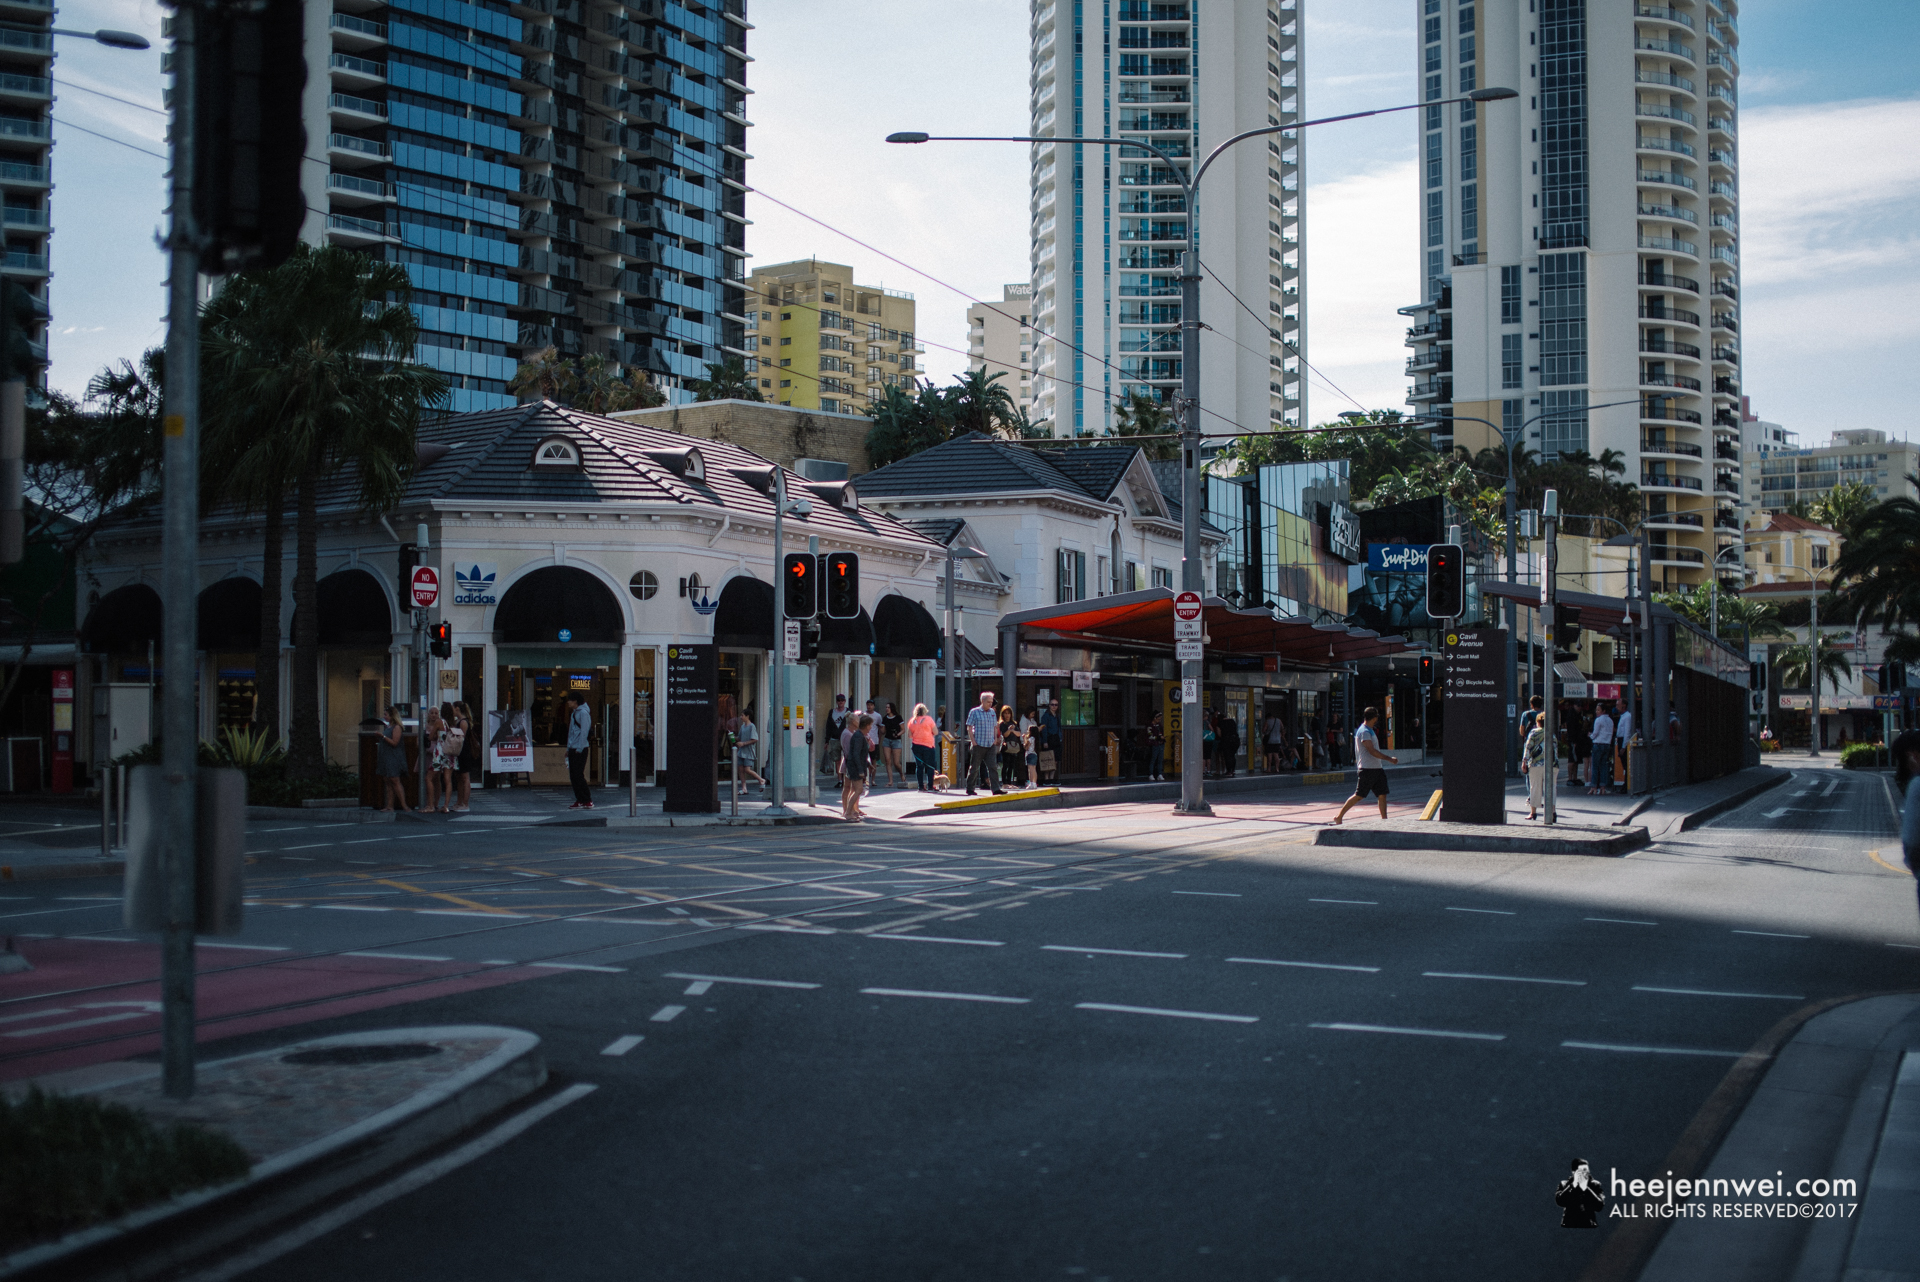 Nearing sunset, lovely long column shadow shaped the main street of Surfers Paradise.